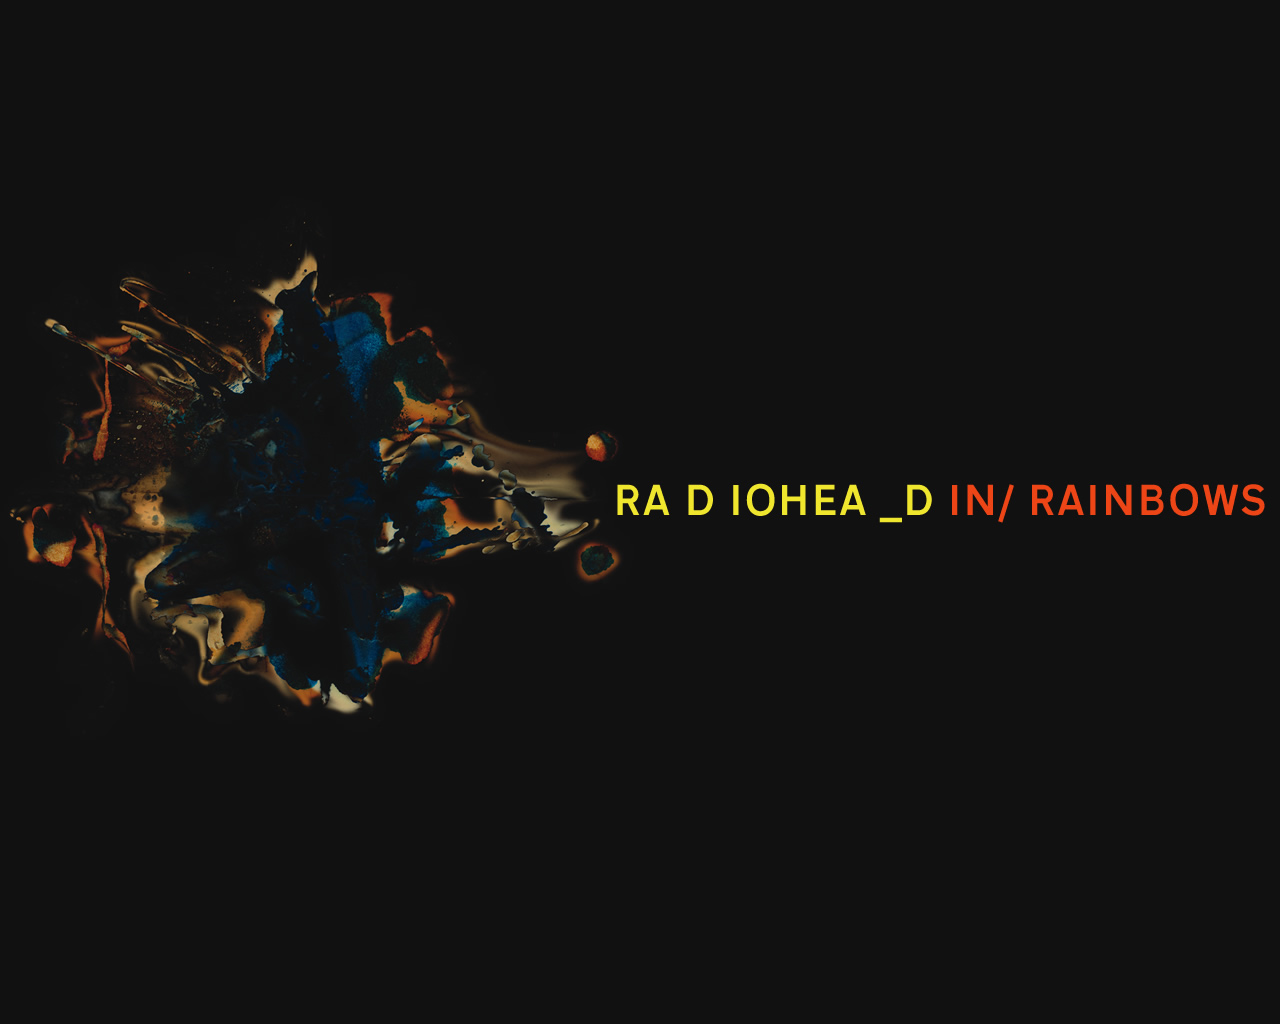 Radiohead images in rainbows hd wallpaper and background photos 27519259 - Wallpaper images ...